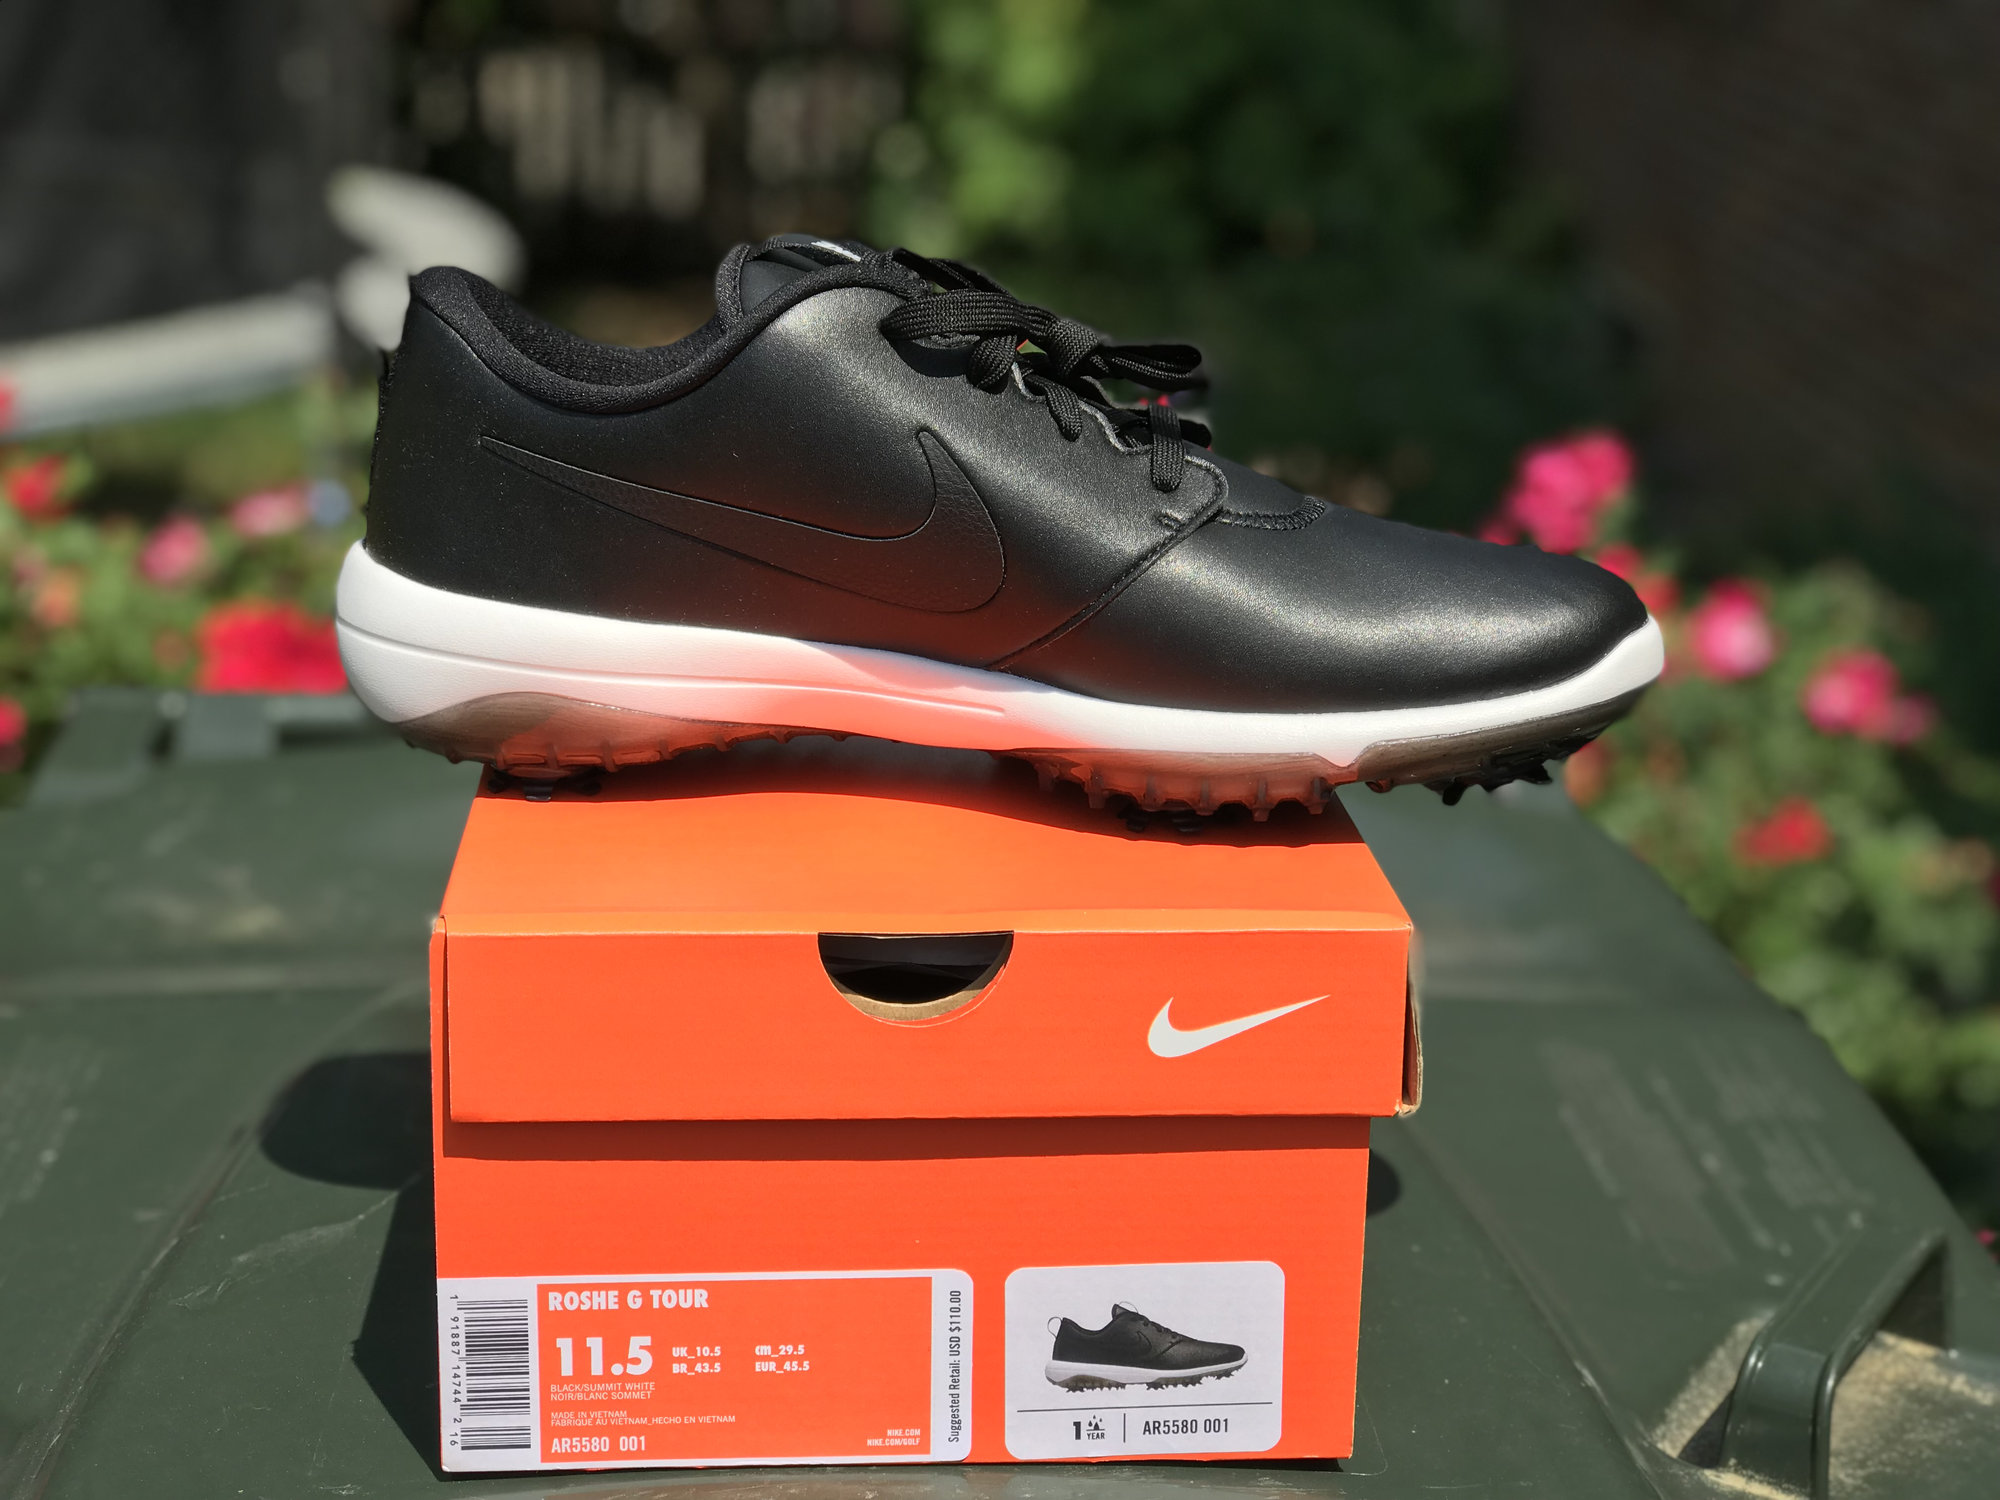 496e0c848a **Brand New in box Nike Roshe G Tour shoes, size 11.5, black & white. Never  worn.